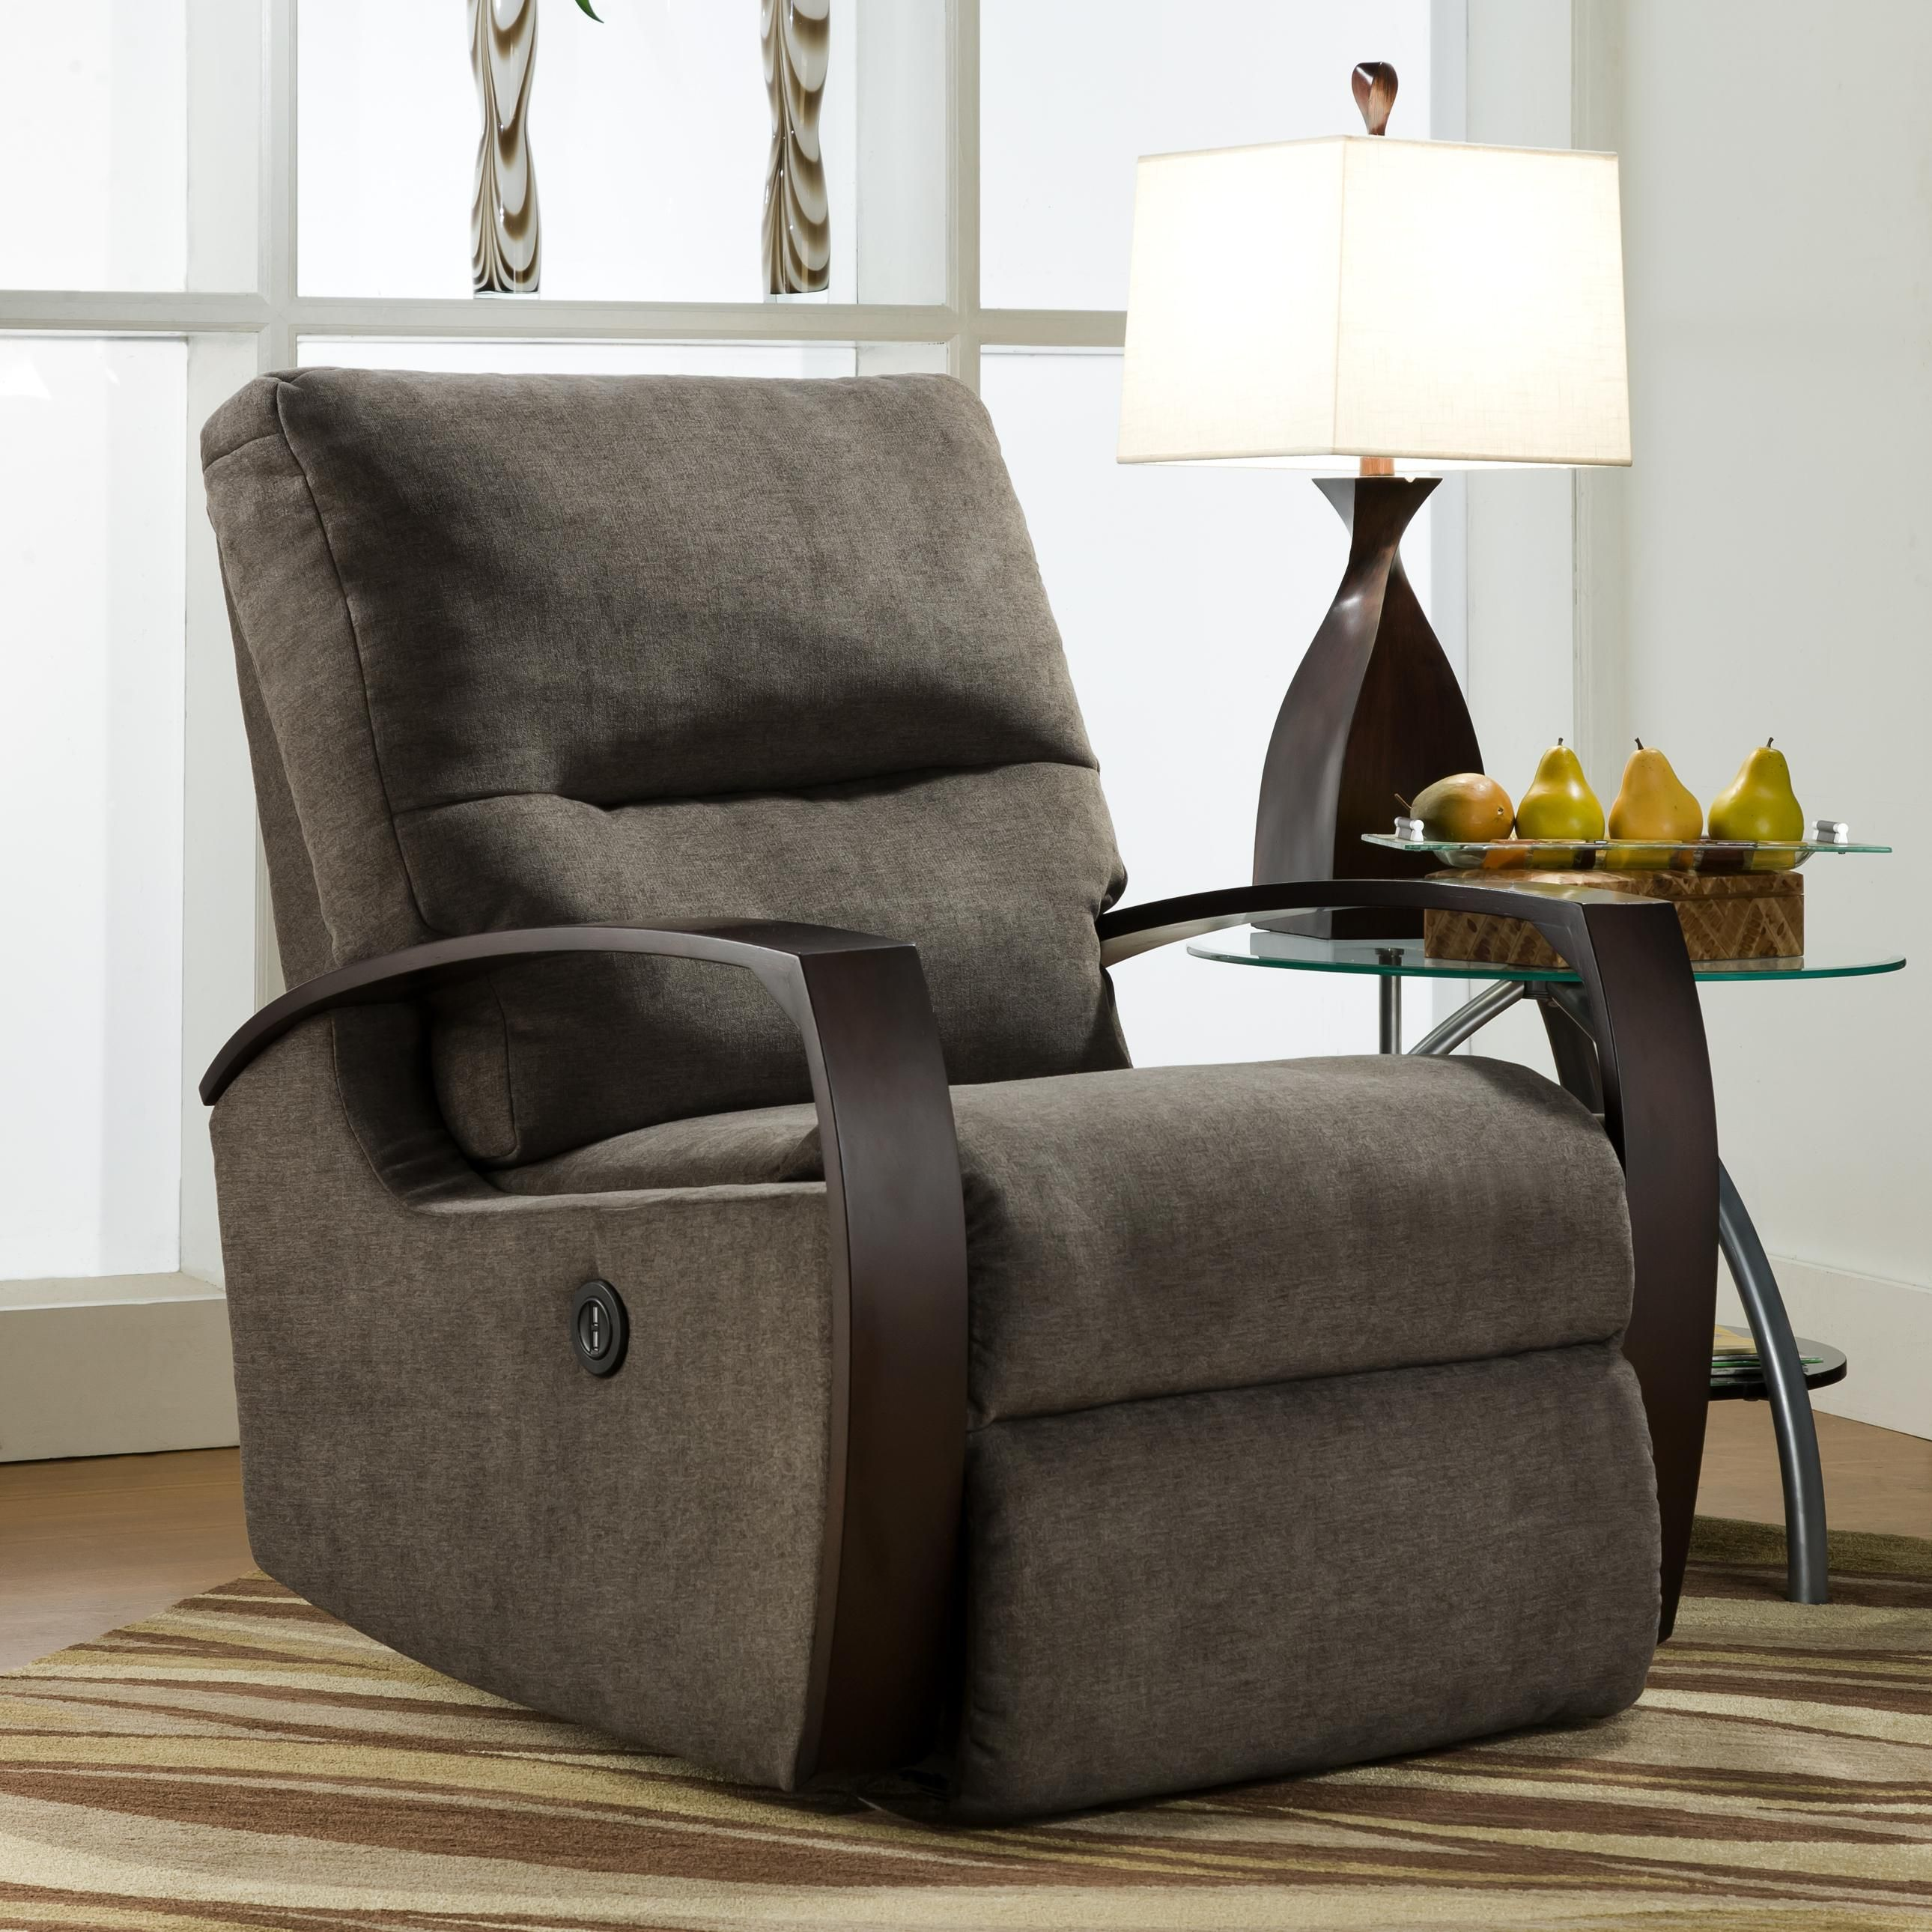 recliners rocker recliner with wooden arms by southern motion at turk furniture